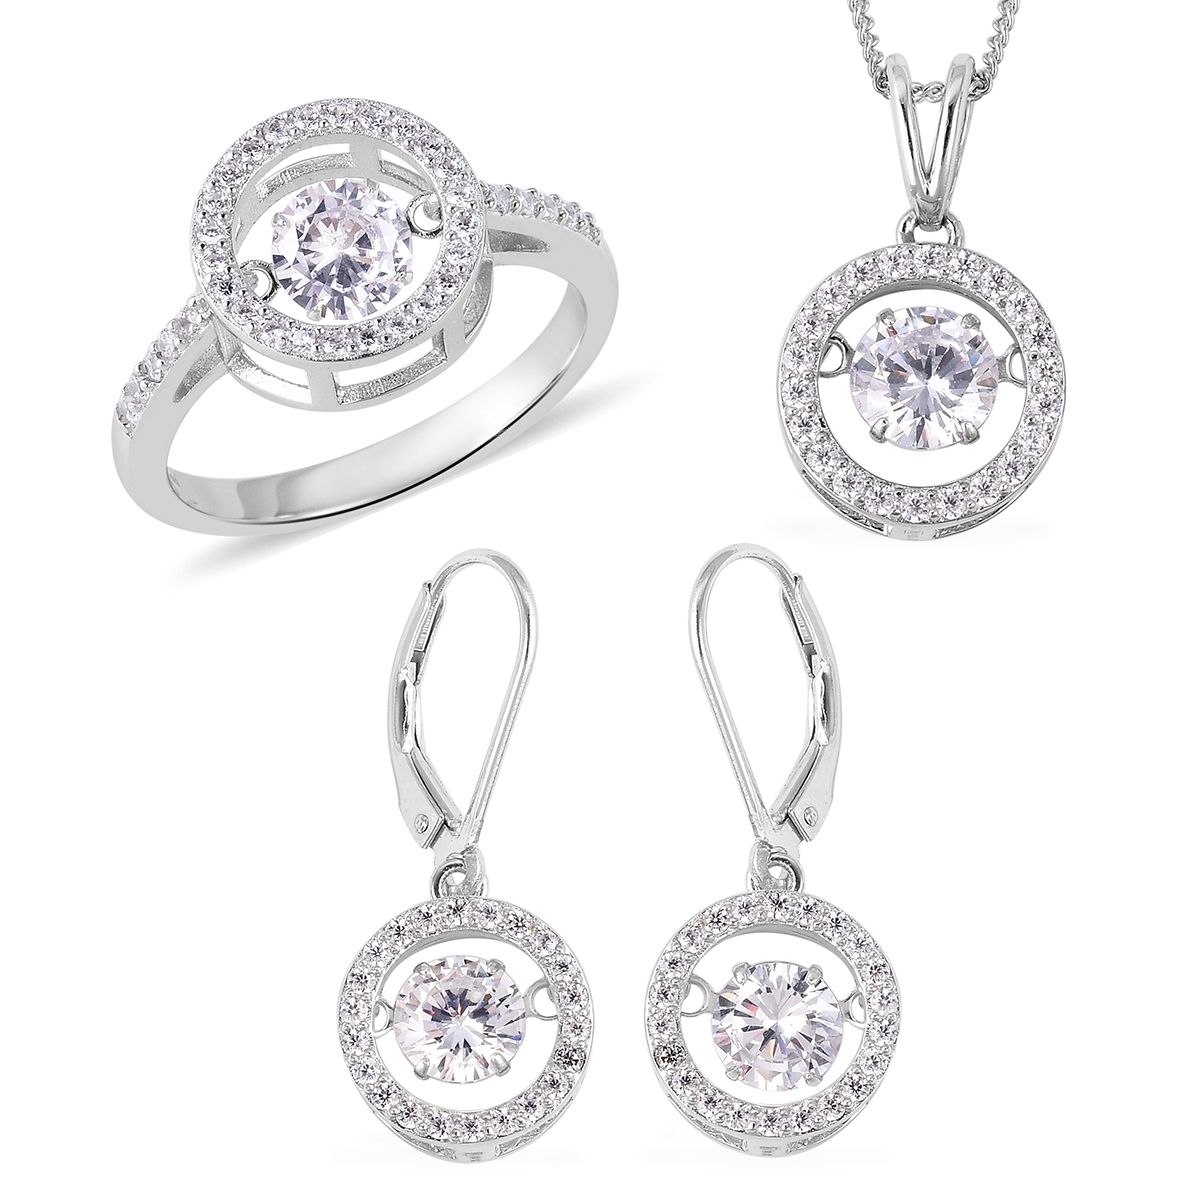 Lustro Stella Dancing Cz Halo Set Earrings, Ring (Size 6) And Pendant Necklace (18 In) In Sterling Silver (View 11 of 25)